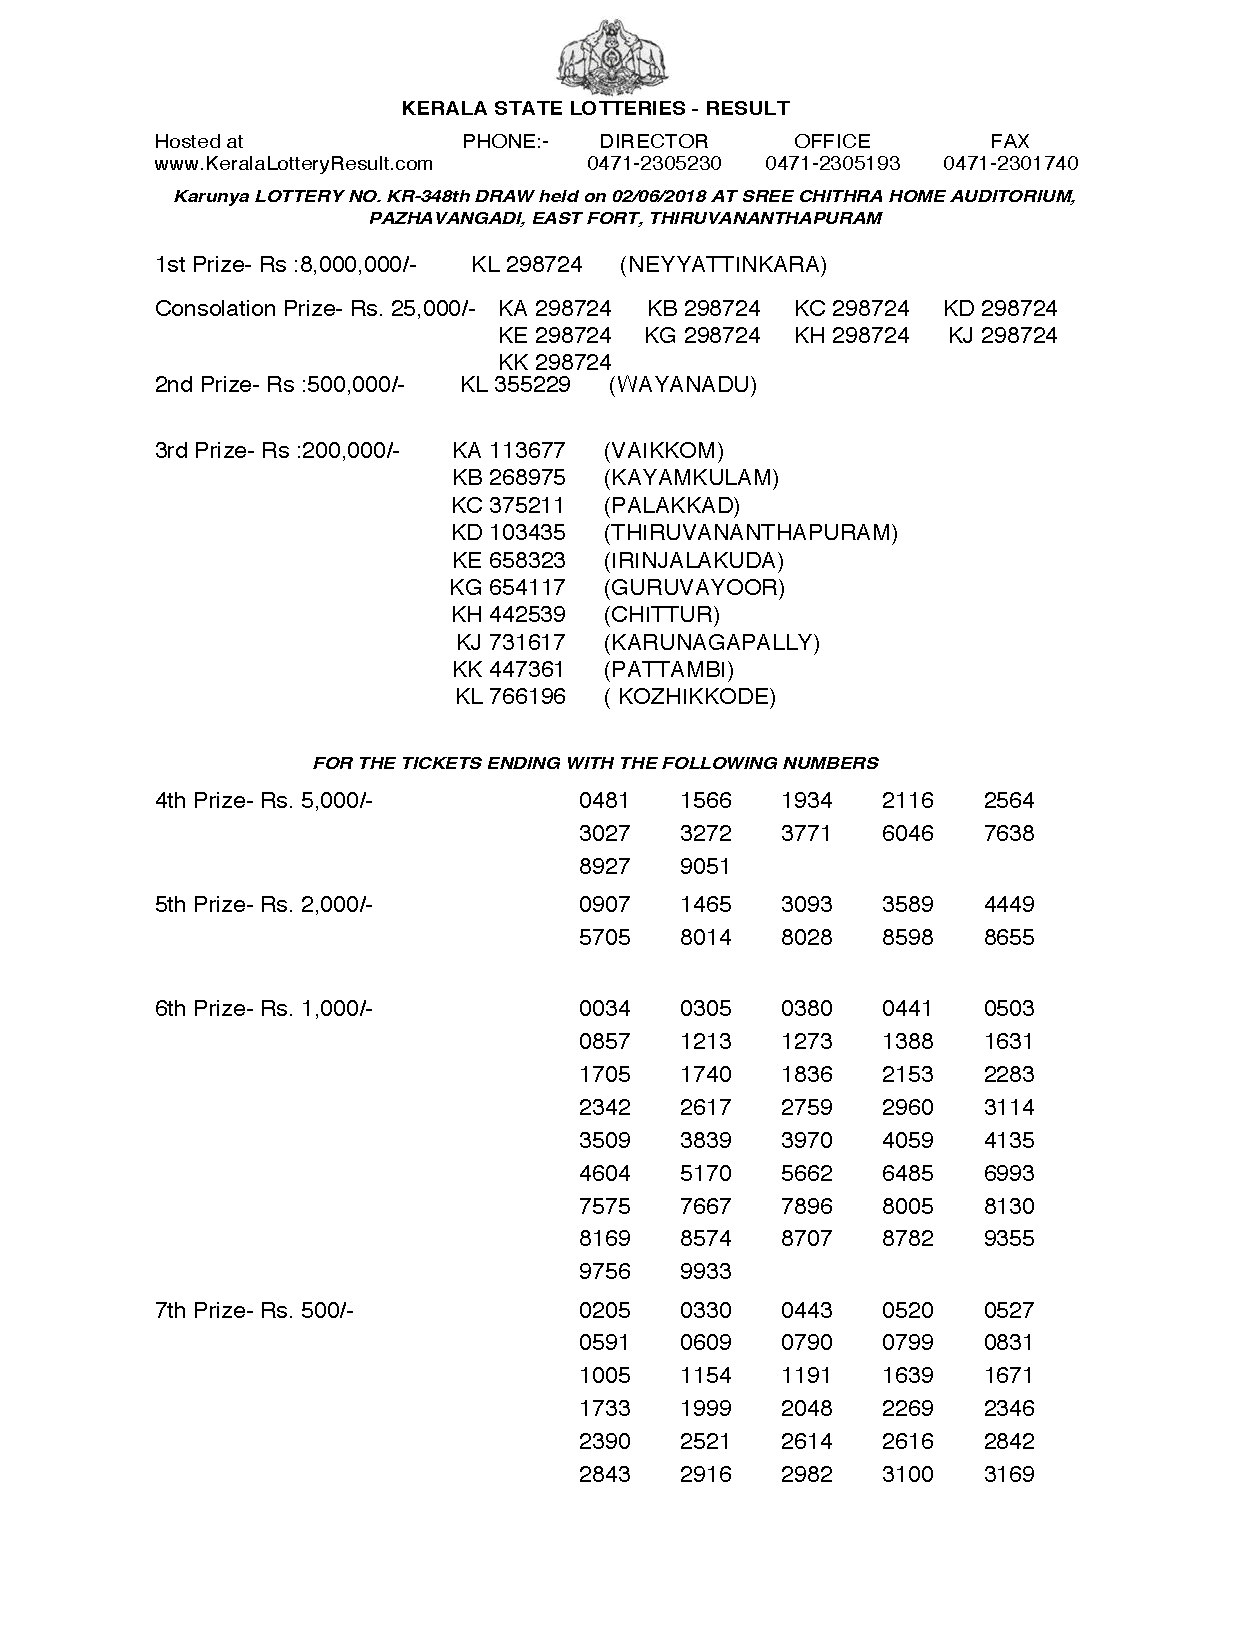 Download Karunya KR 348 Kerala Lottery Result (02 06 2018